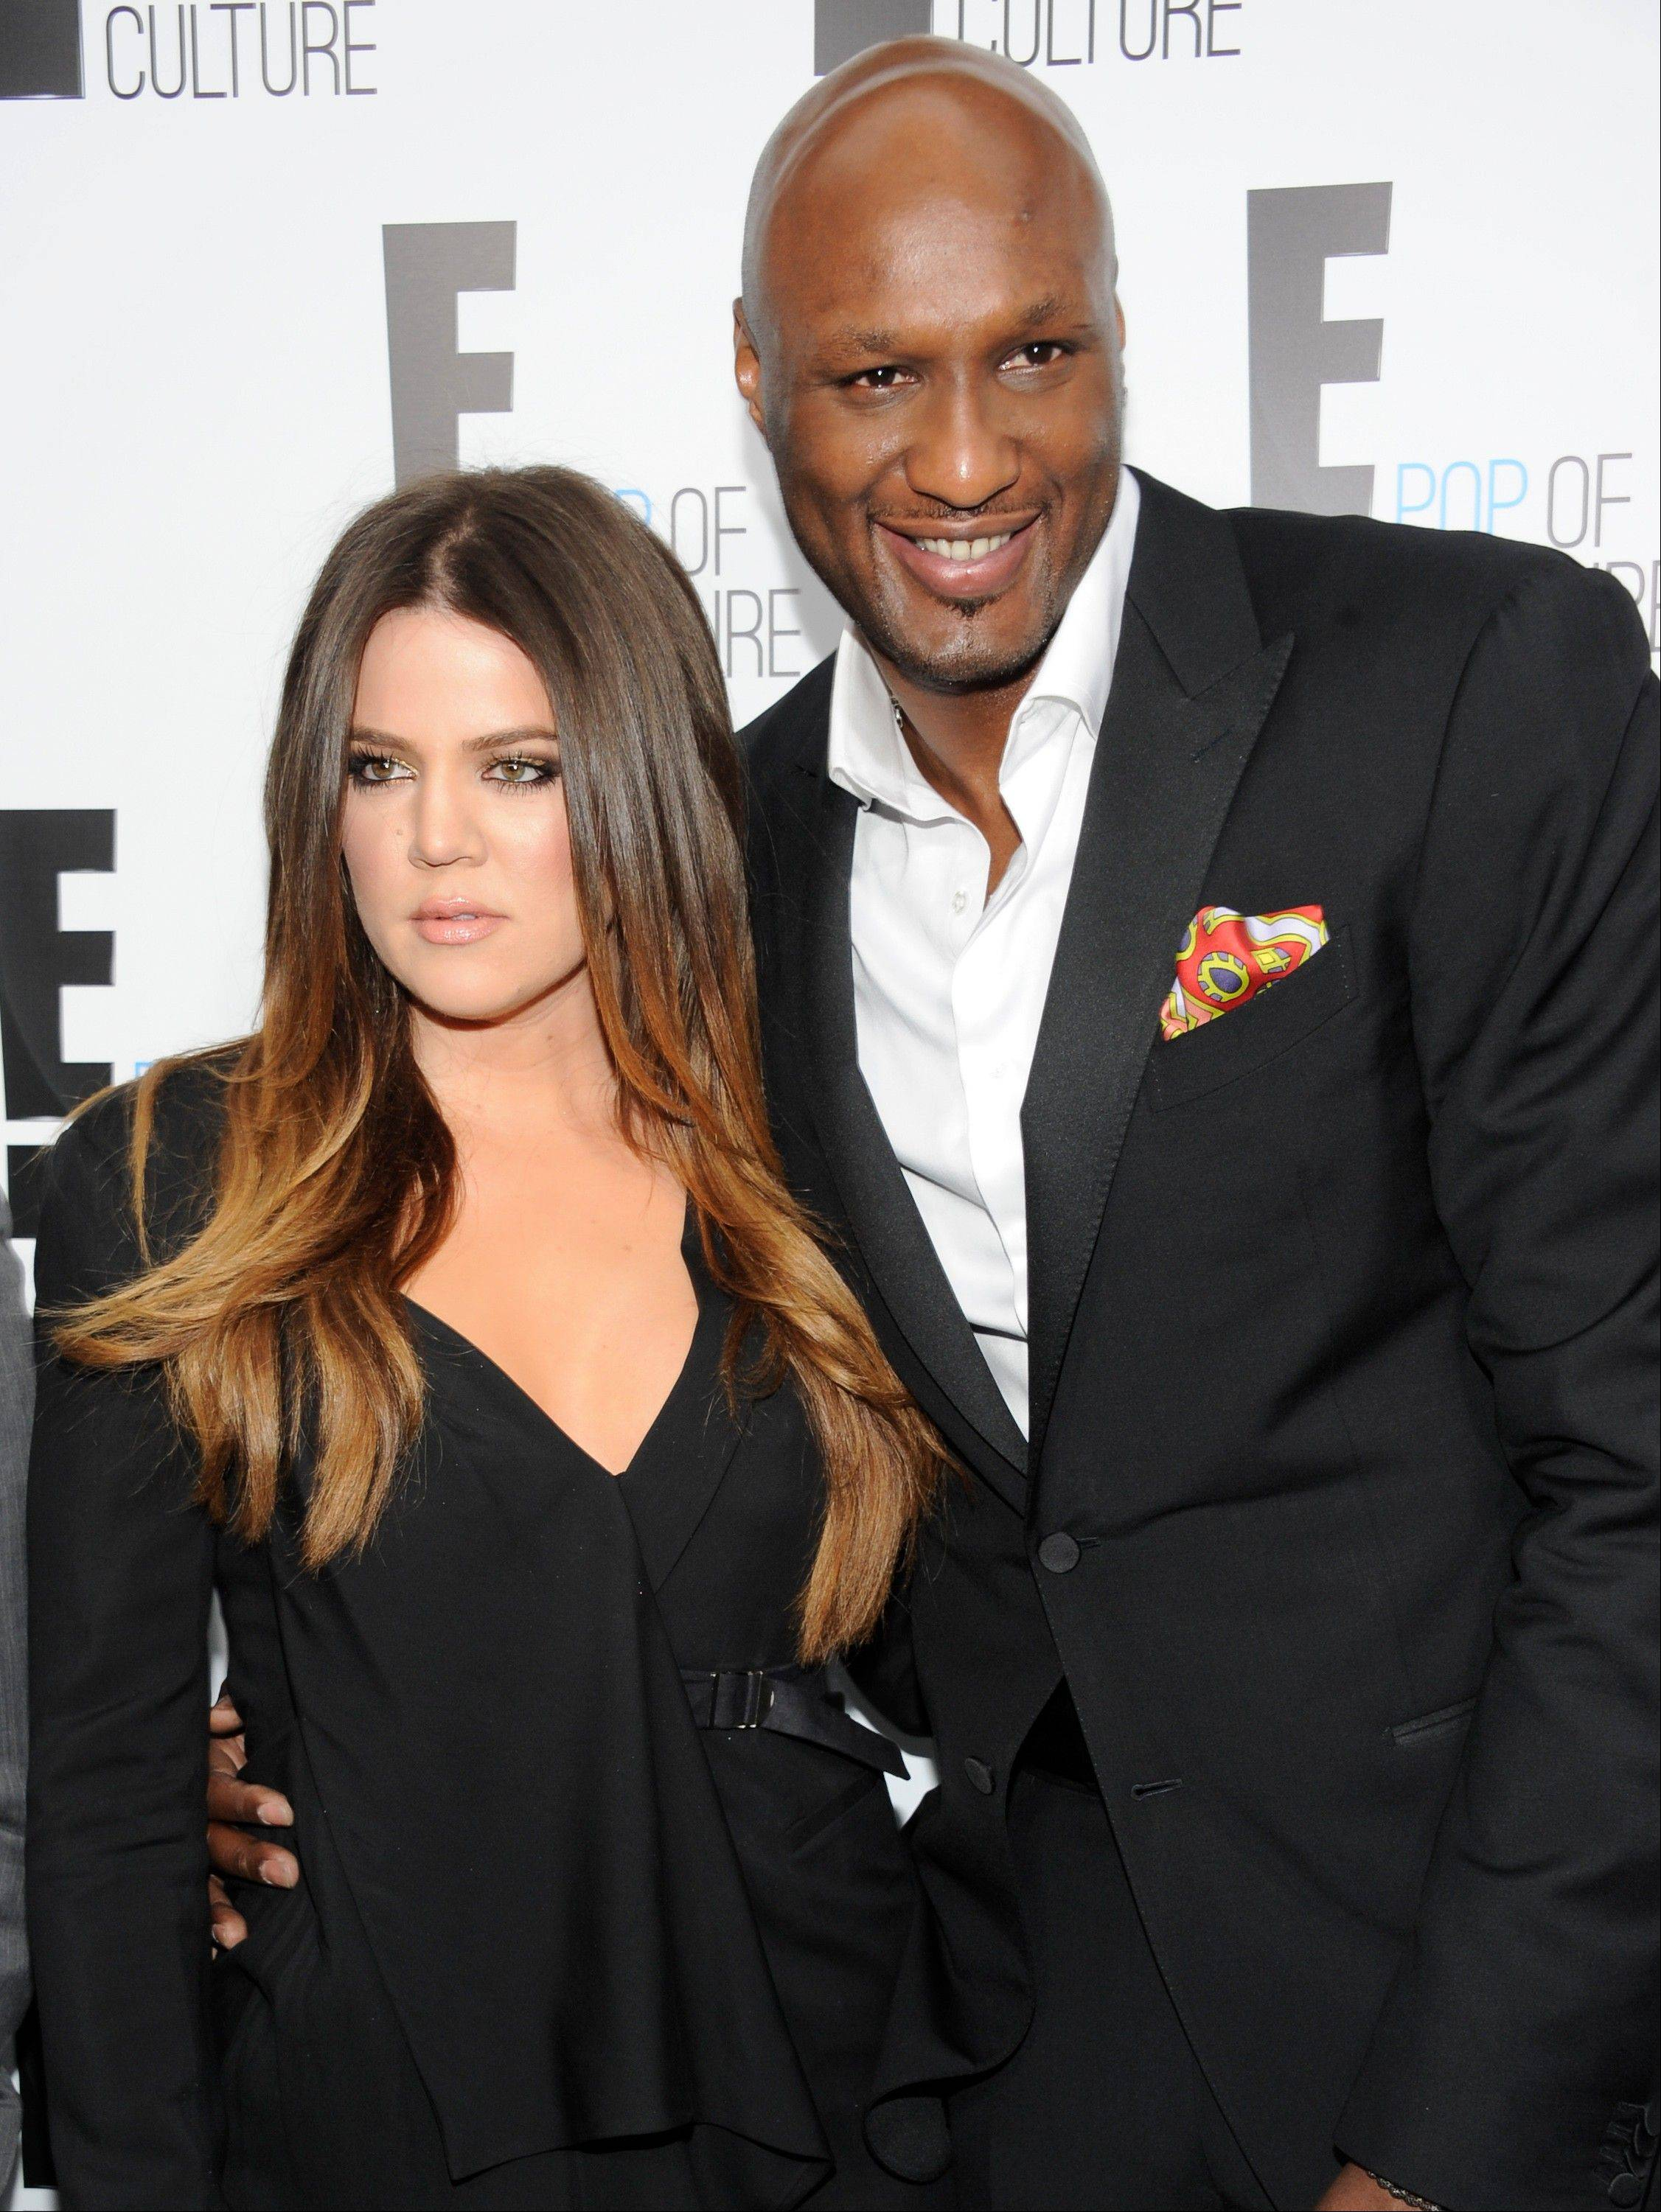 "Khloe Kardashian Odom and Lamar Odom pose at an E! Network event in New York. Odom is breaking his silence with his first post on Twitter since the NBA star was arrested and charged with driving under the influence last month. Odom tweeted ""Seeing the snakes"" on Tuesday night, Sept. 24, 2013, in his first post since his Aug. 30 arrest."